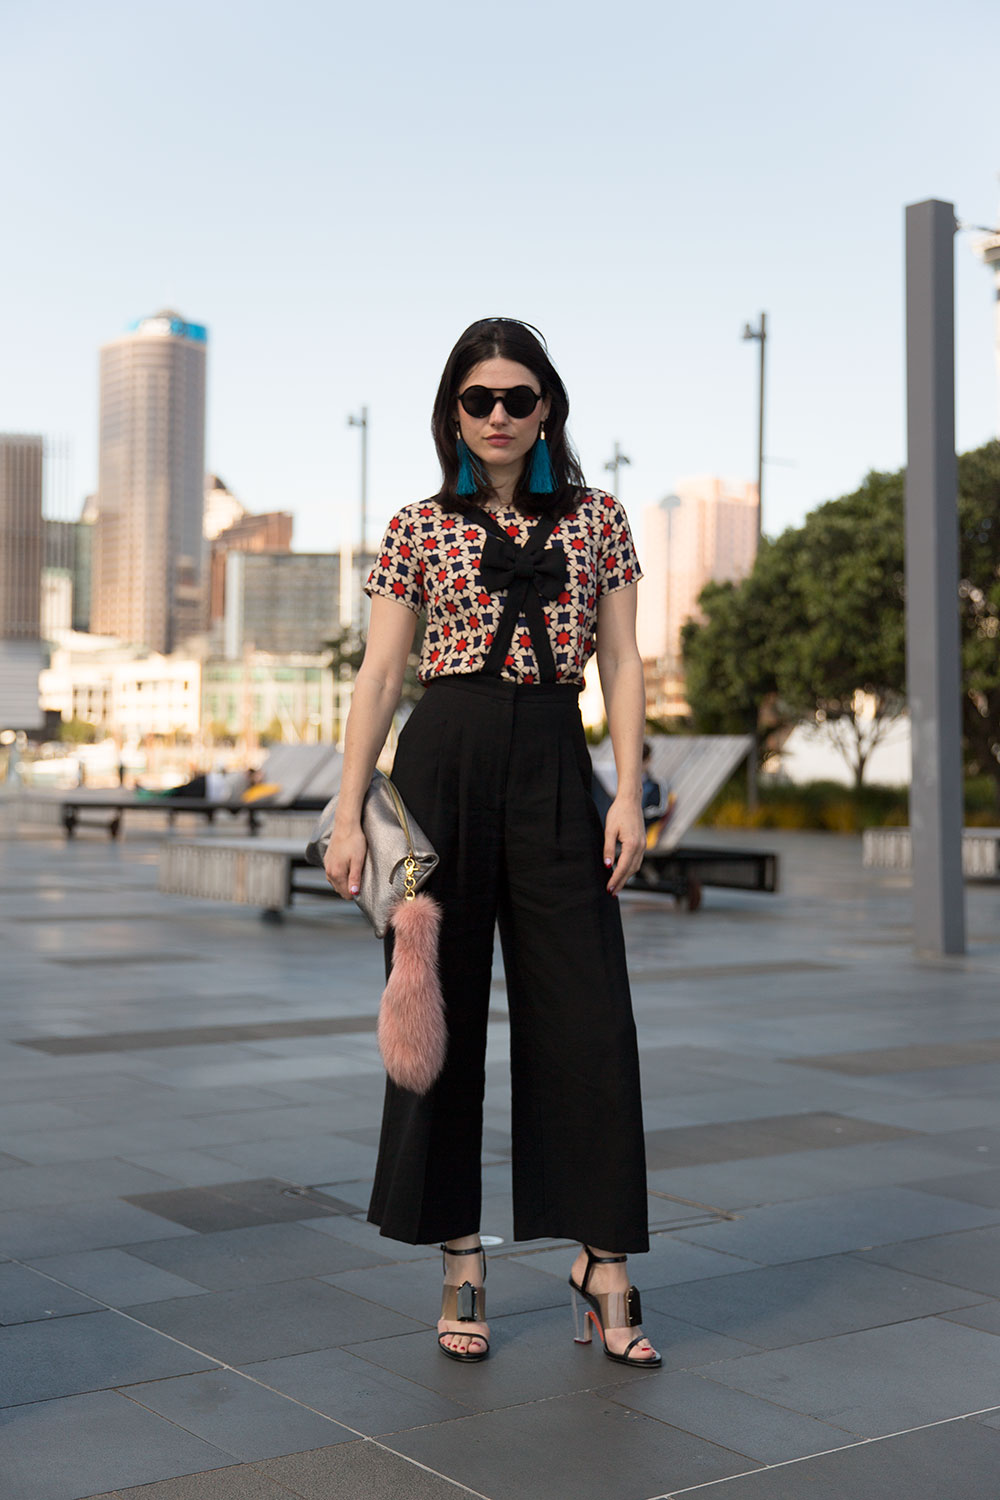 Foureyes New Zealand Street Style Fashion Blog Imogene Foureyes New Zealand Street Style